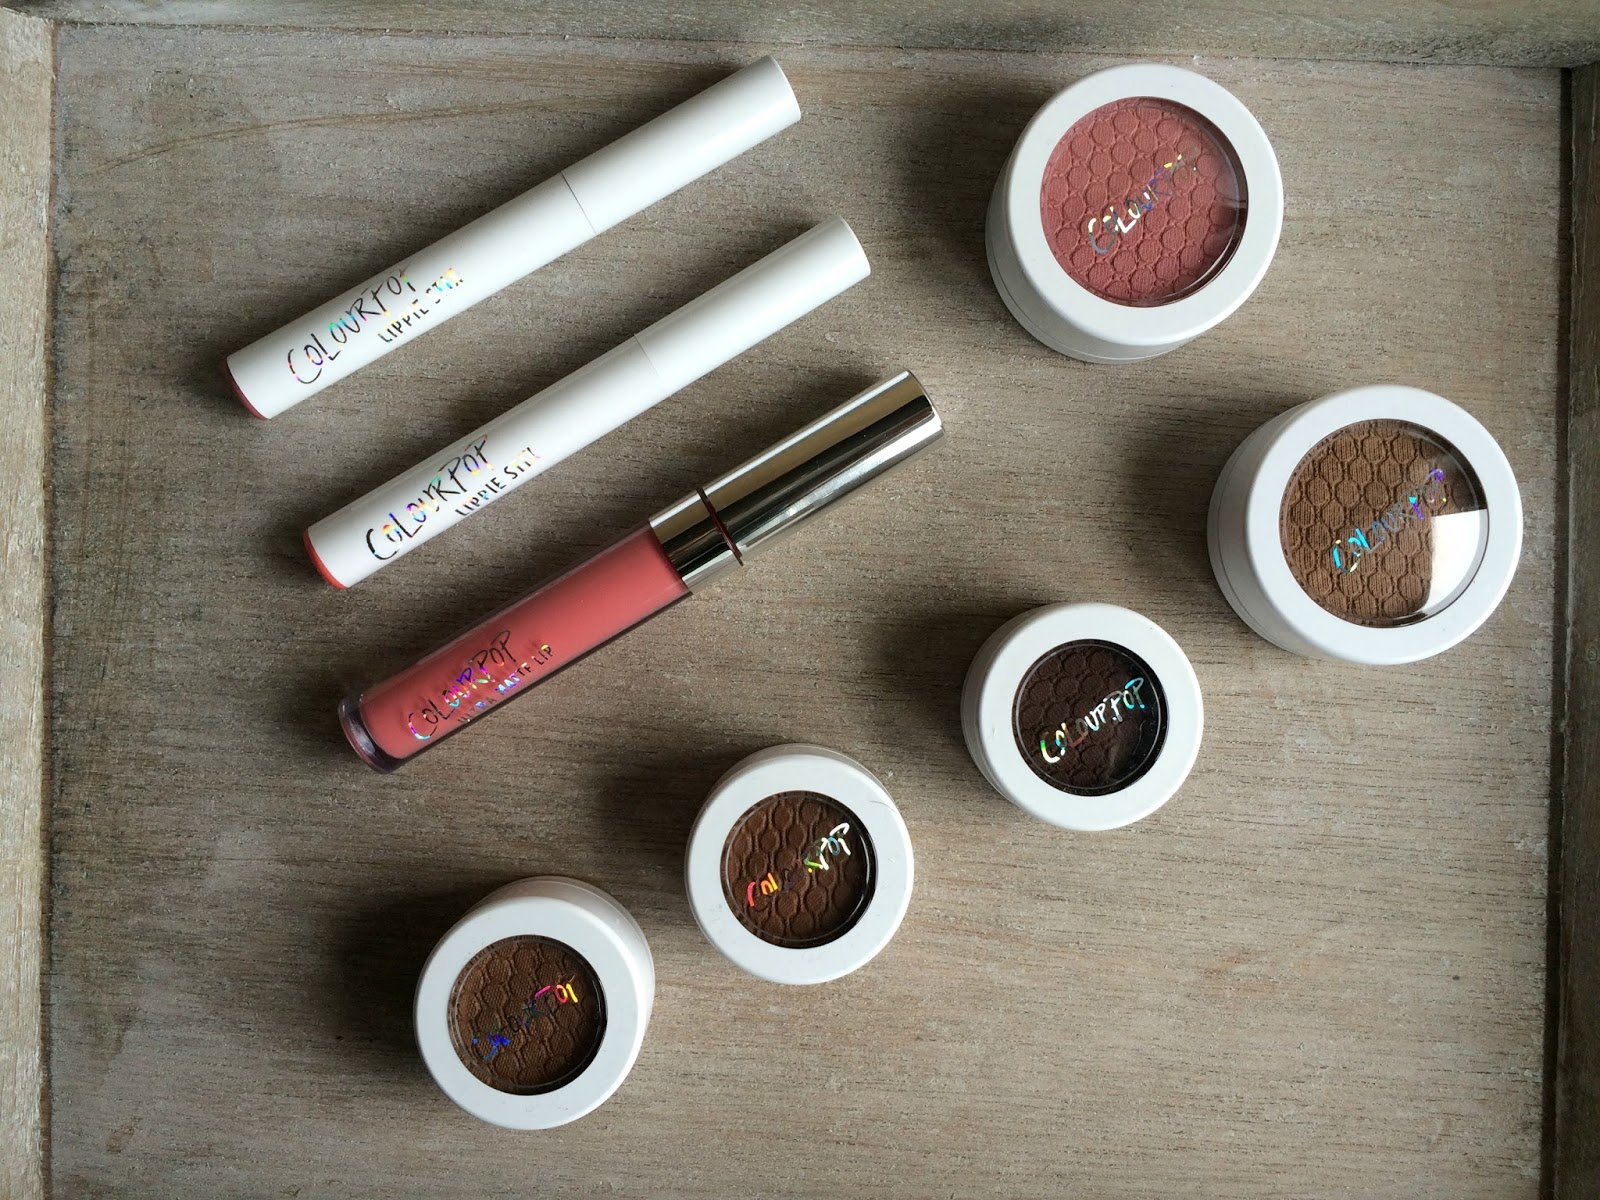 ColourPop haul UK lumiere lippie stix super shock shadows ultra matte